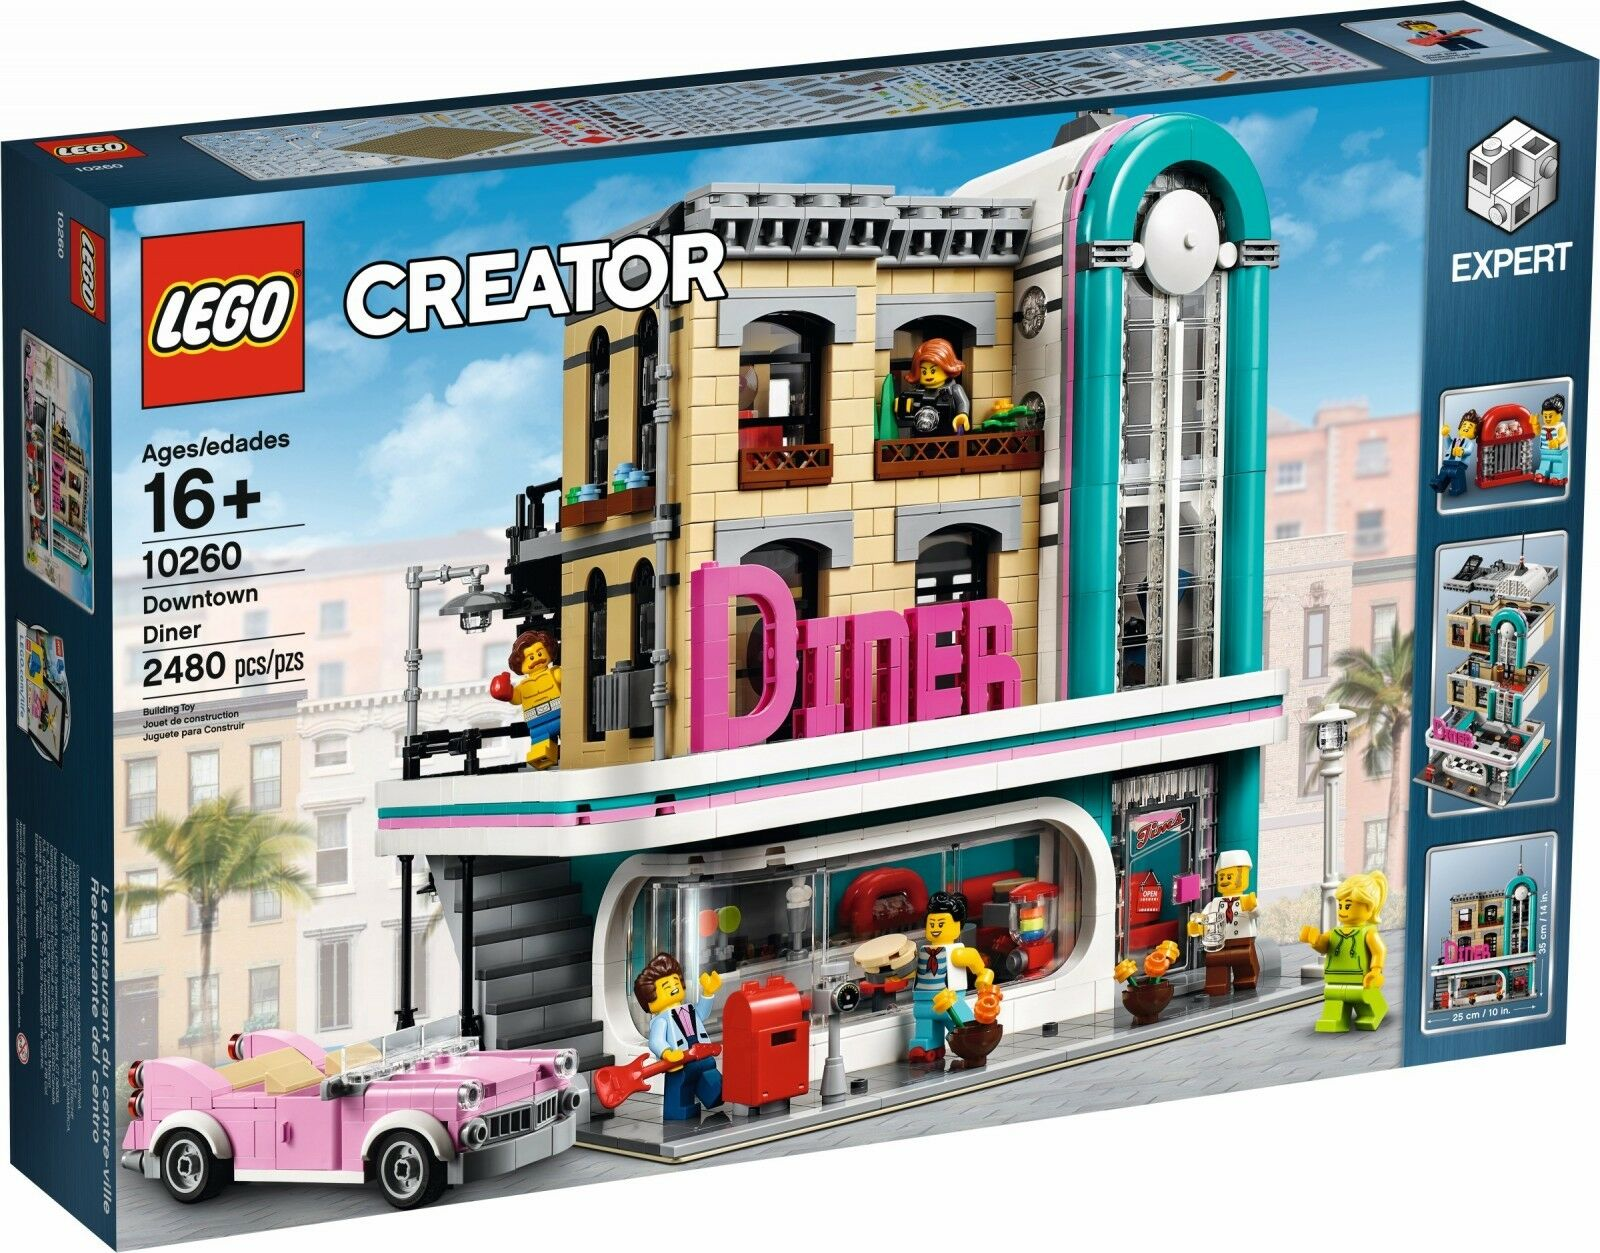 LEGO ® Creator Expert 10260 americana Diner NEW OVP _ DOWNTOWN Diner NRFB MISB